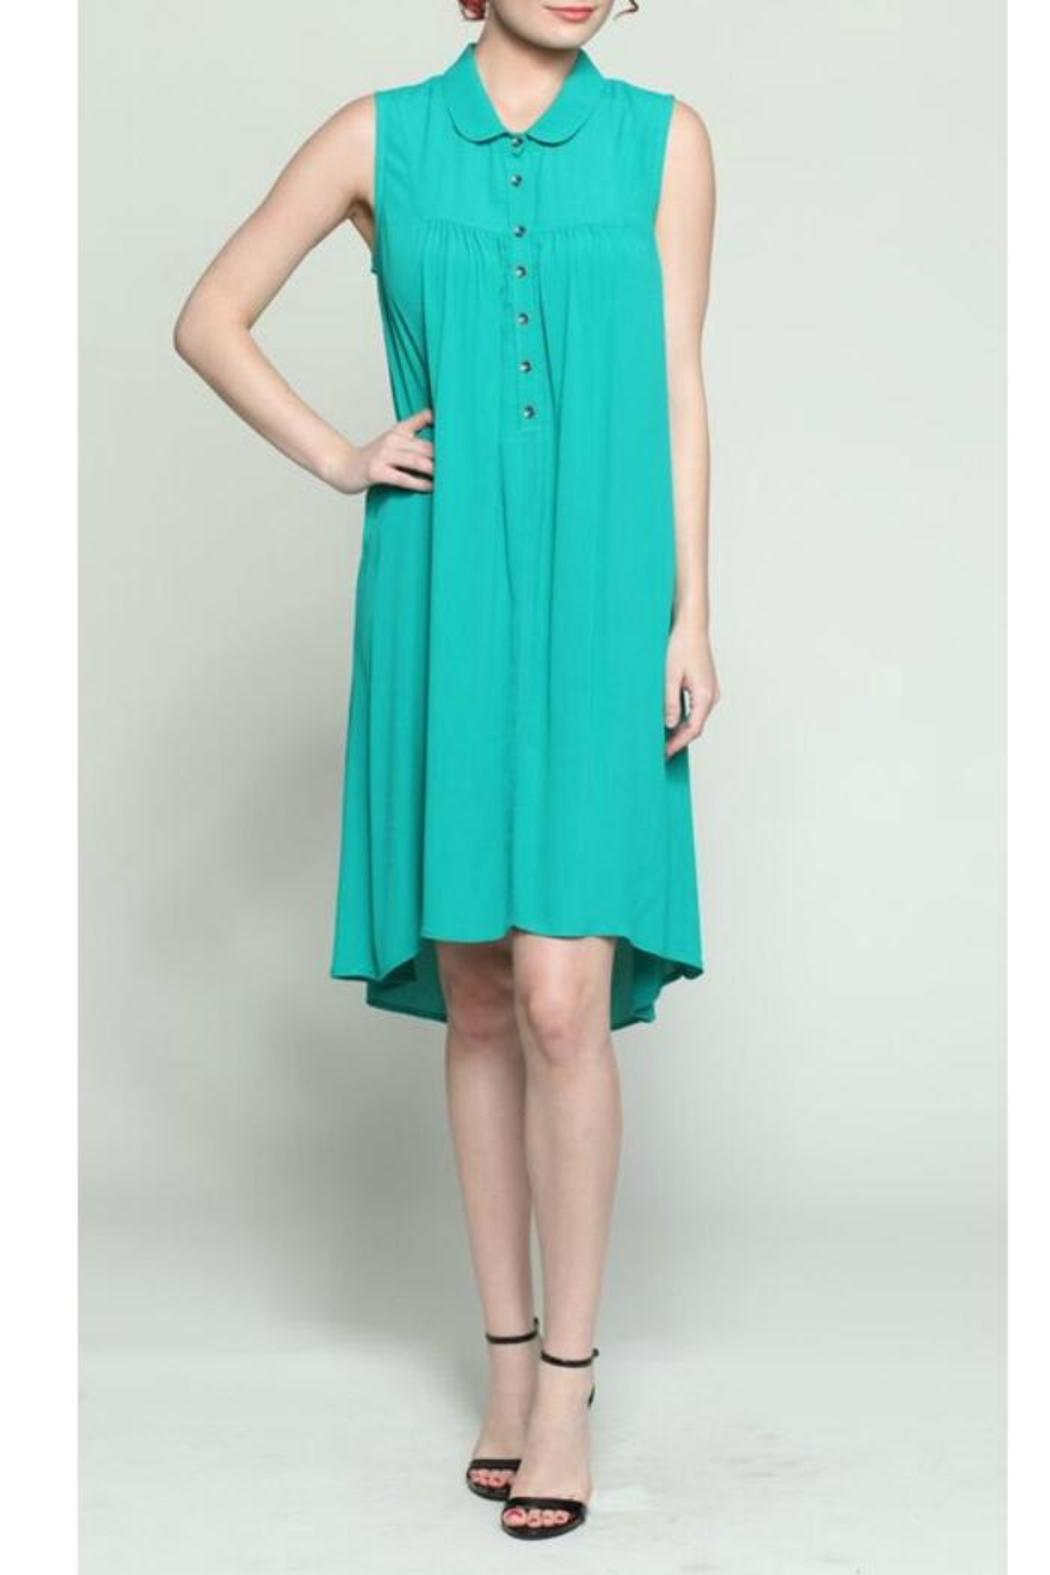 Chalet et ceci Teal Raelene Dress - Front Cropped Image